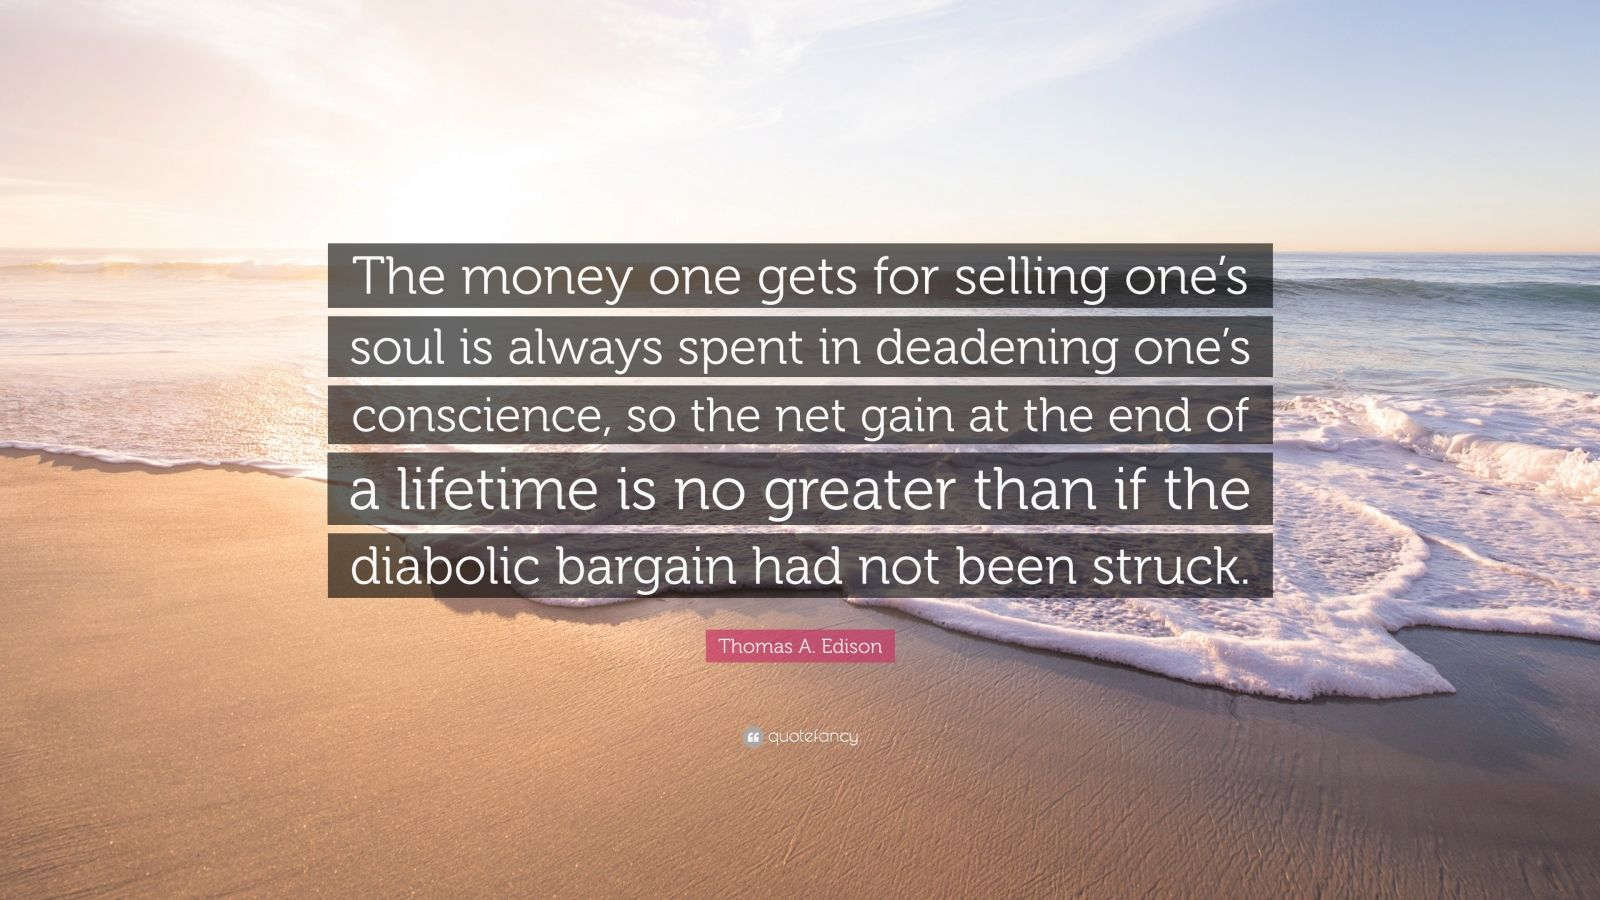 """Thomas A. Edison Quote: """"The money one gets for selling one's soul is always spent in deadening one's conscience, so the net gain at the end of a lifetime is no greater than if the diabolic bargain had not been struck."""""""